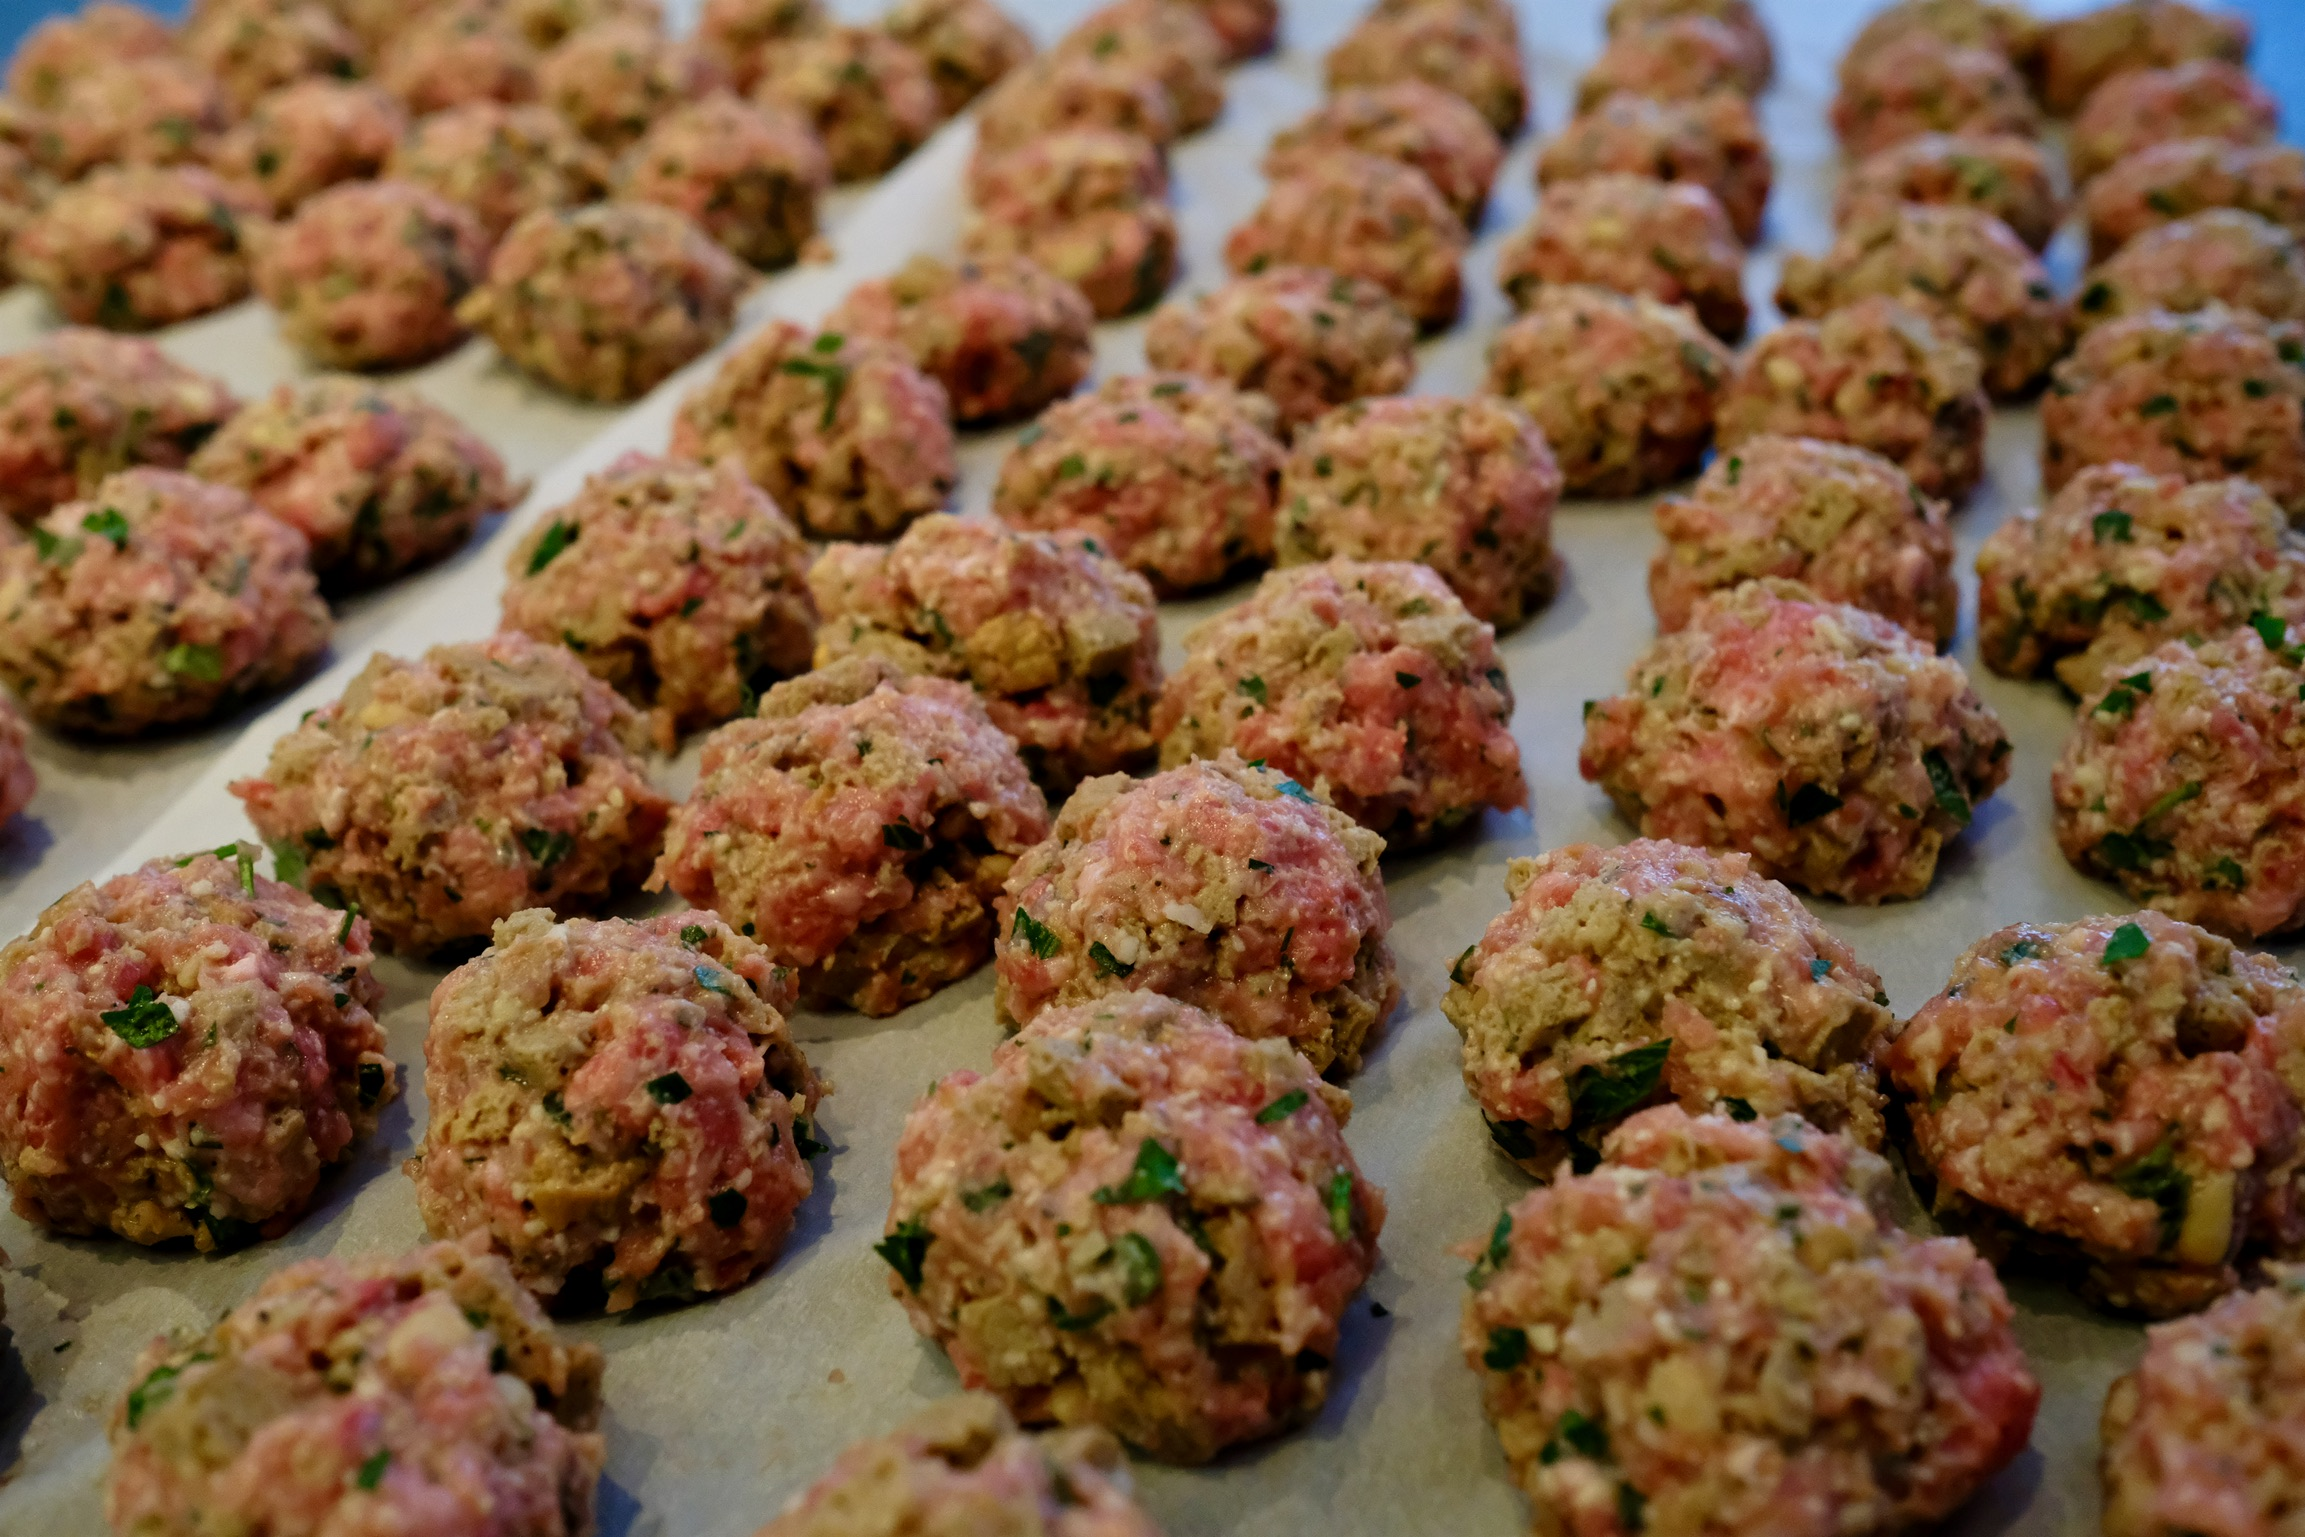 We sized our meatballs somewhere between a golf ball and a tennis ball, but you can form them into whatever size you want!